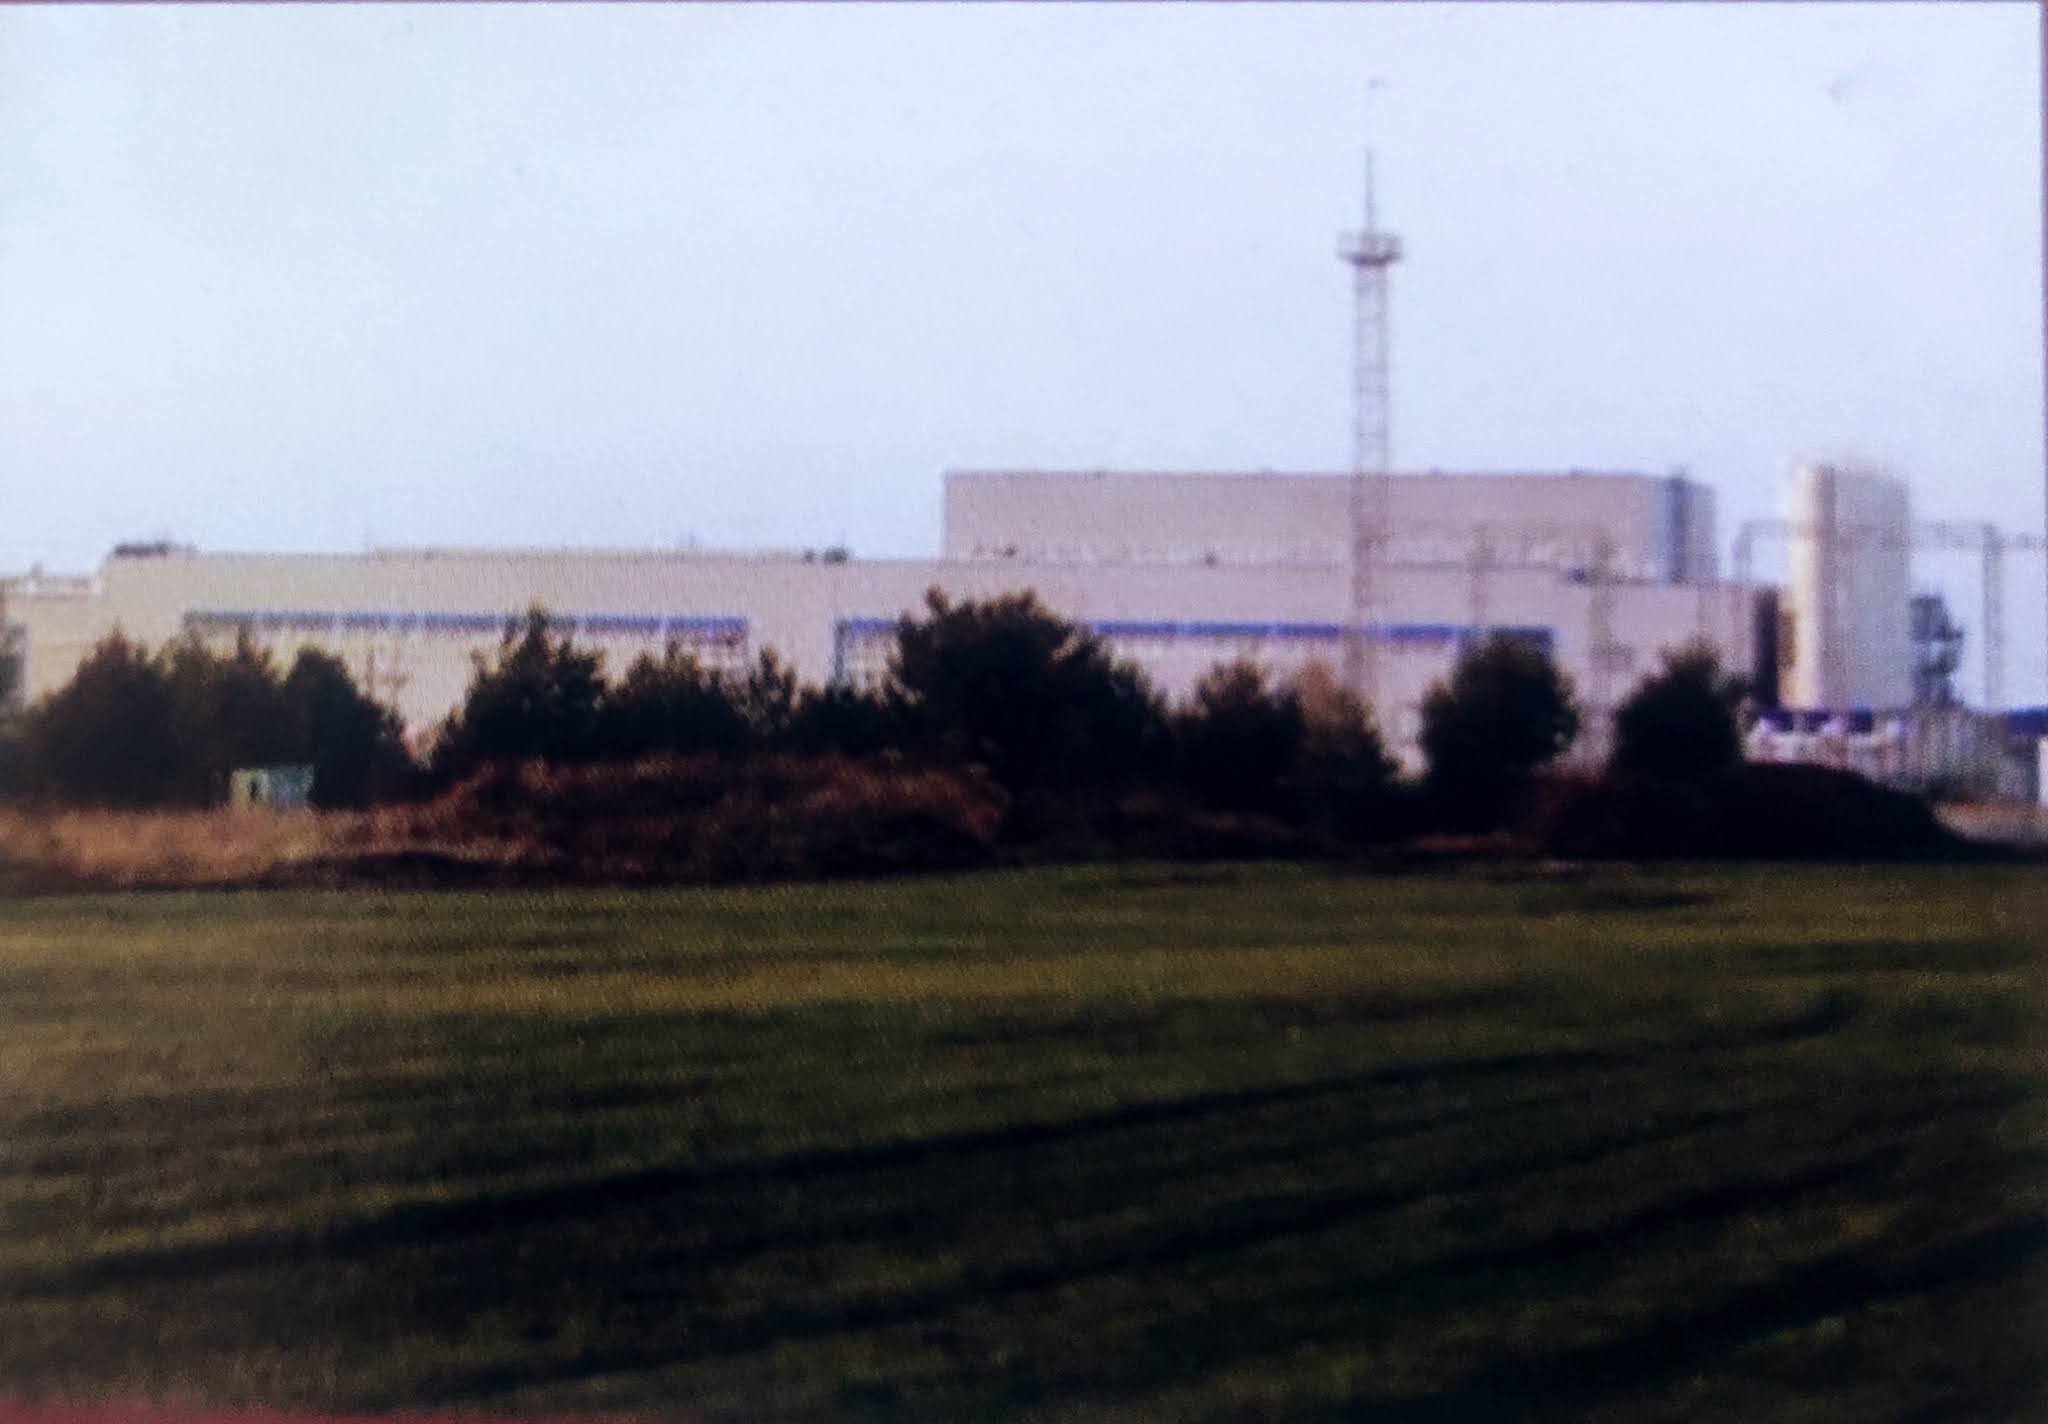 Image contains a research center